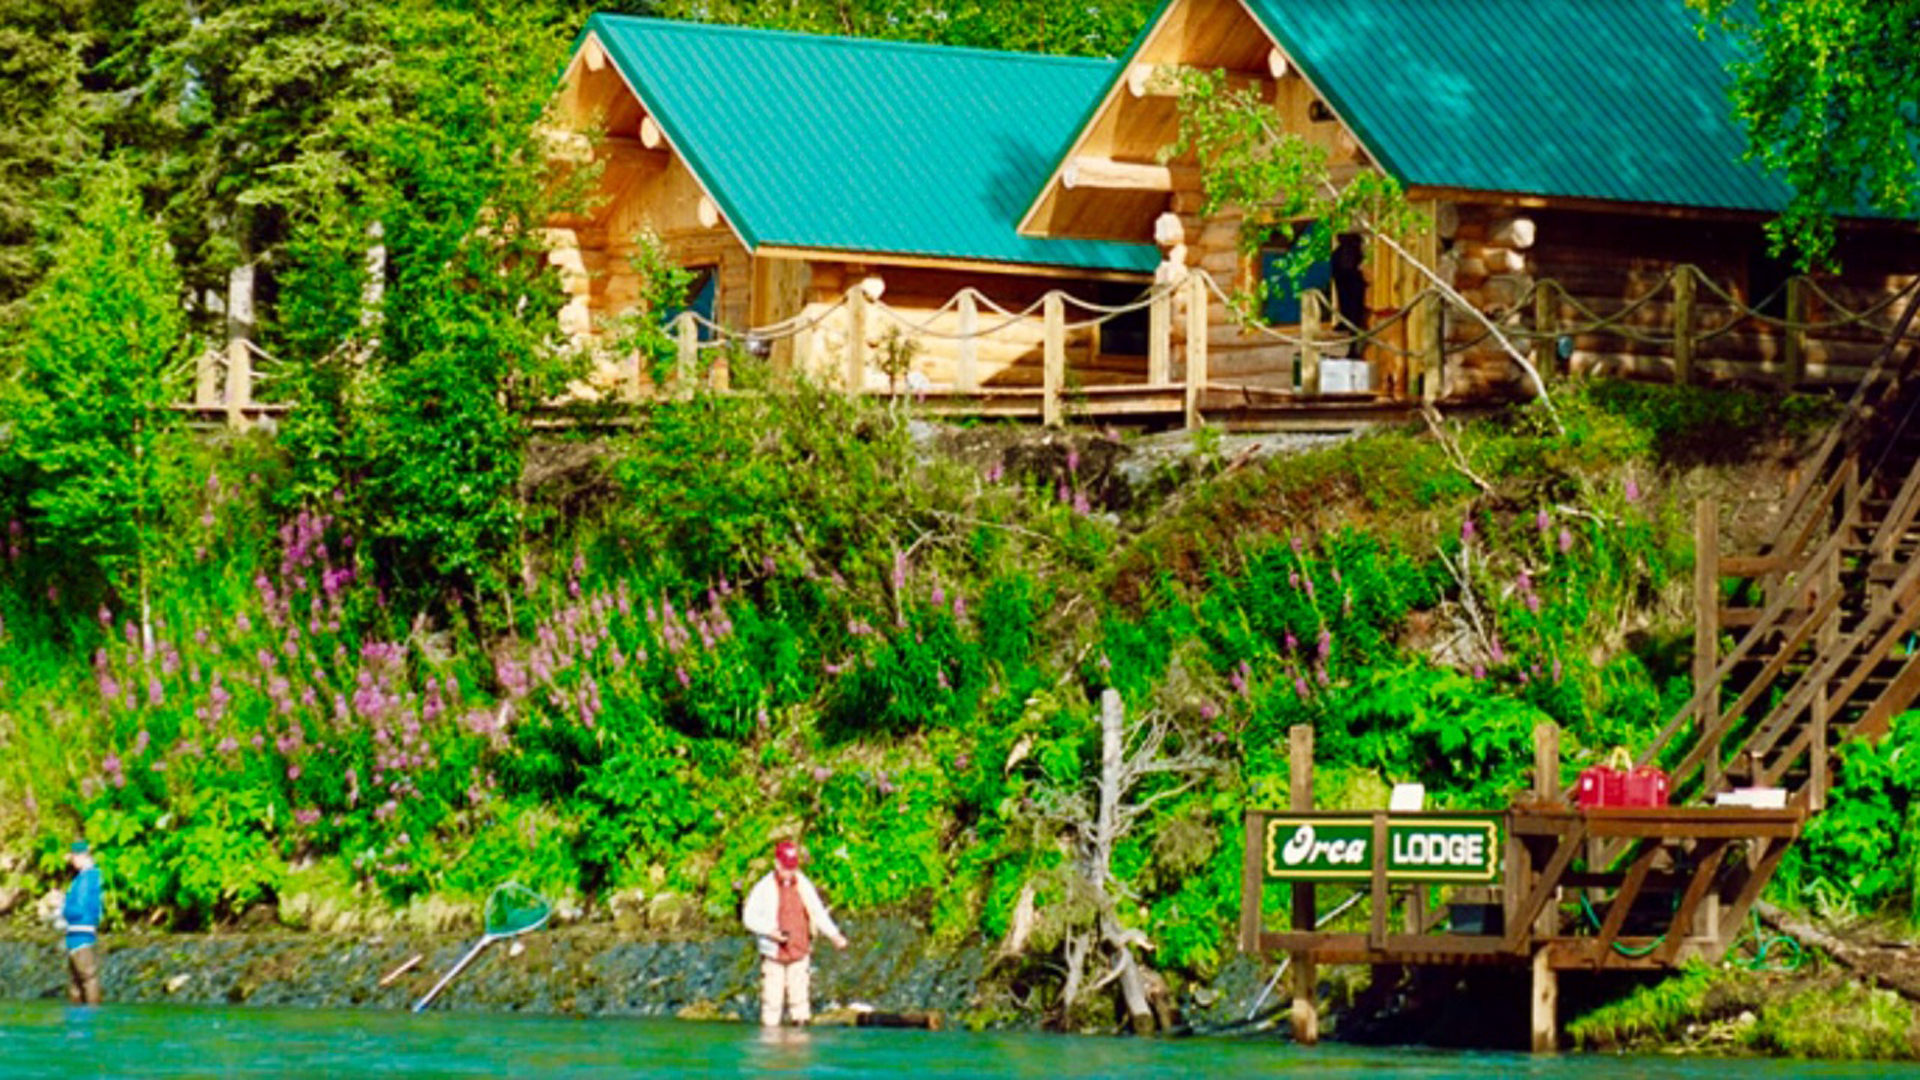 Welcome to Orca Lodge!